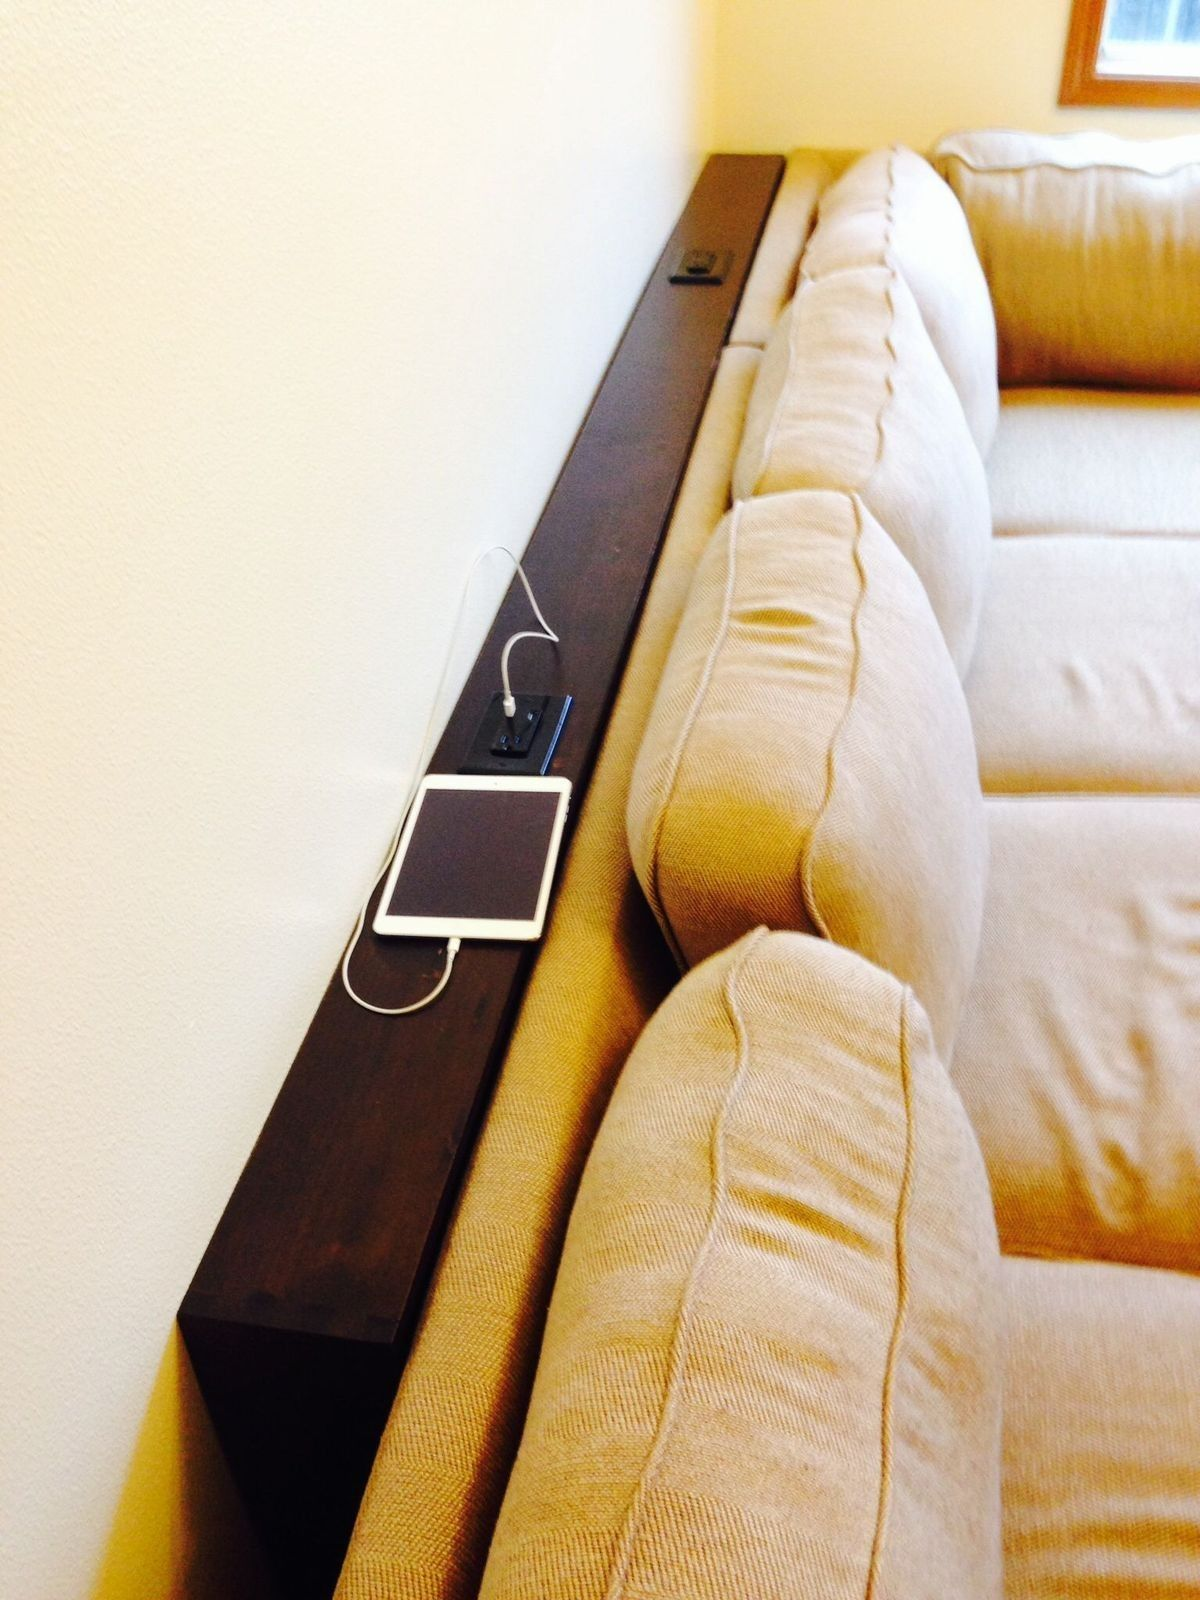 Sample For Behind The Couch Table Console Very Useful More Useful If Got Electric Plug Outlets For Ch Farmhouse Sofa Farmhouse Sofa Table Behind Sofa Table